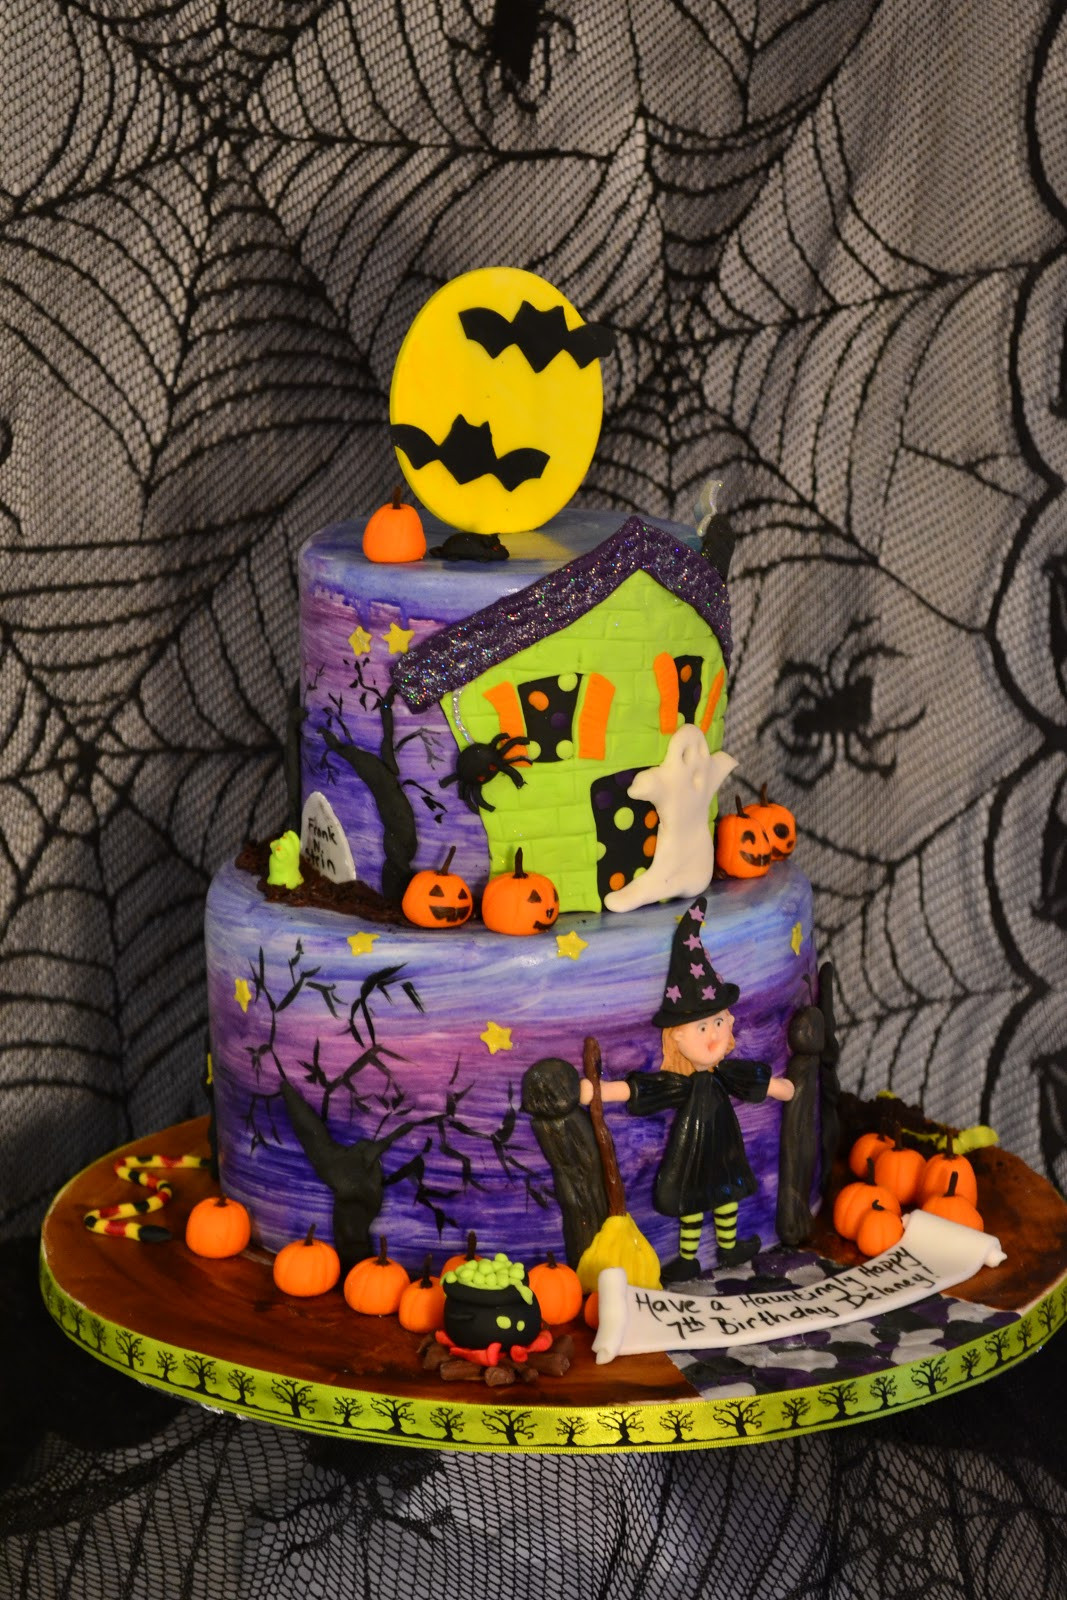 Halloween Birthday Cake Pictures  Oh just put a cupcake in it Halloween birthday cake